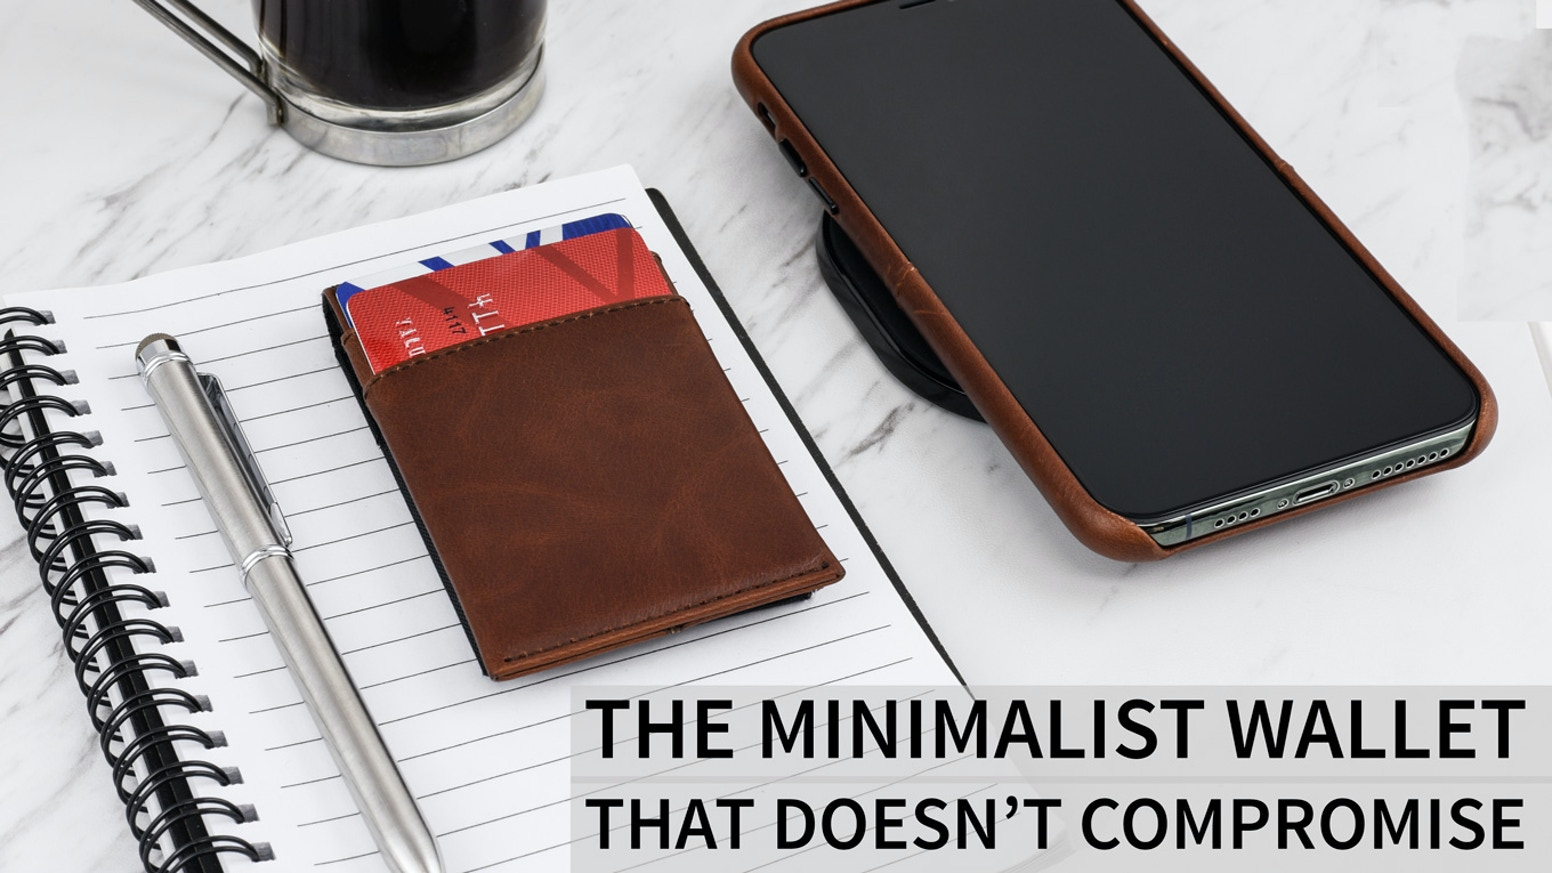 A wallet in pursuit of minimalism without compromising functionality.